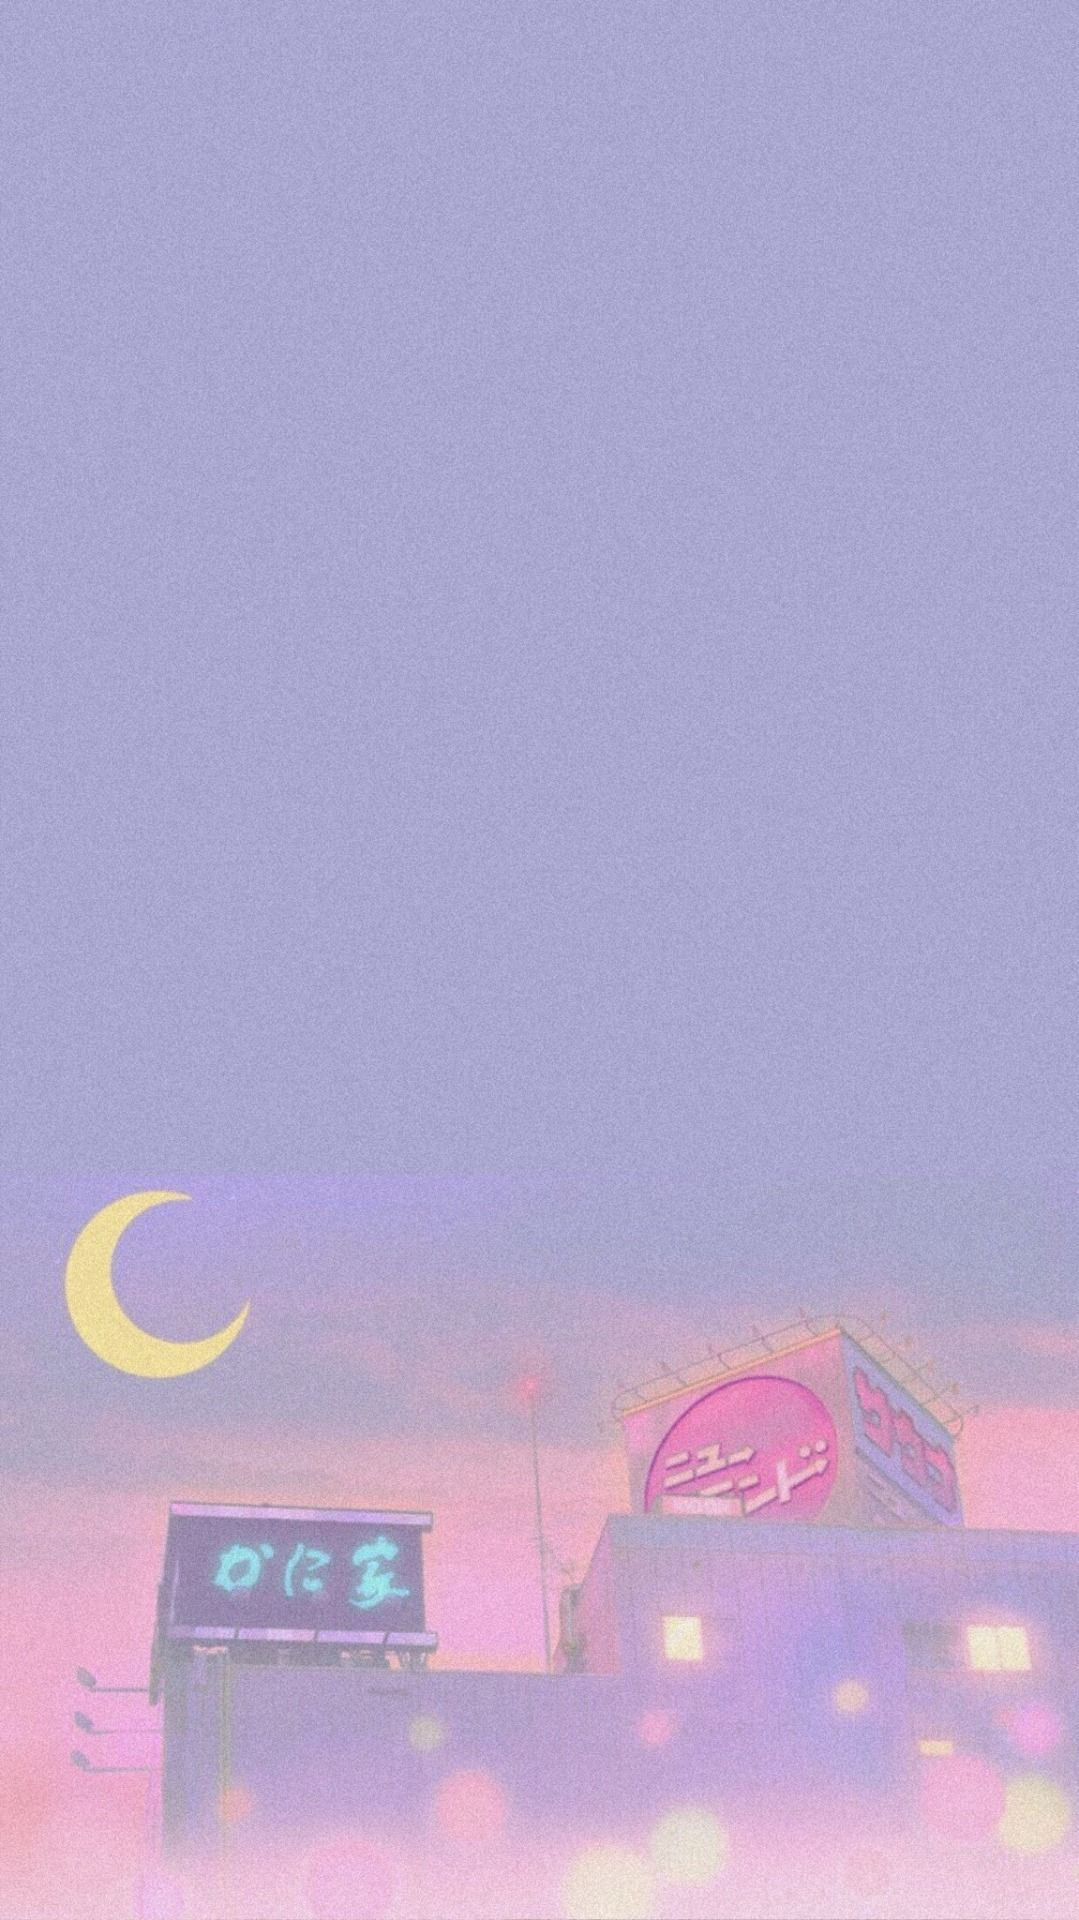 90s Anime Aesthetic Wallpaper In 2020 Cute Pastel Wallpaper Anime Wallpaper Iphone Anime Backgrounds Wallpapers